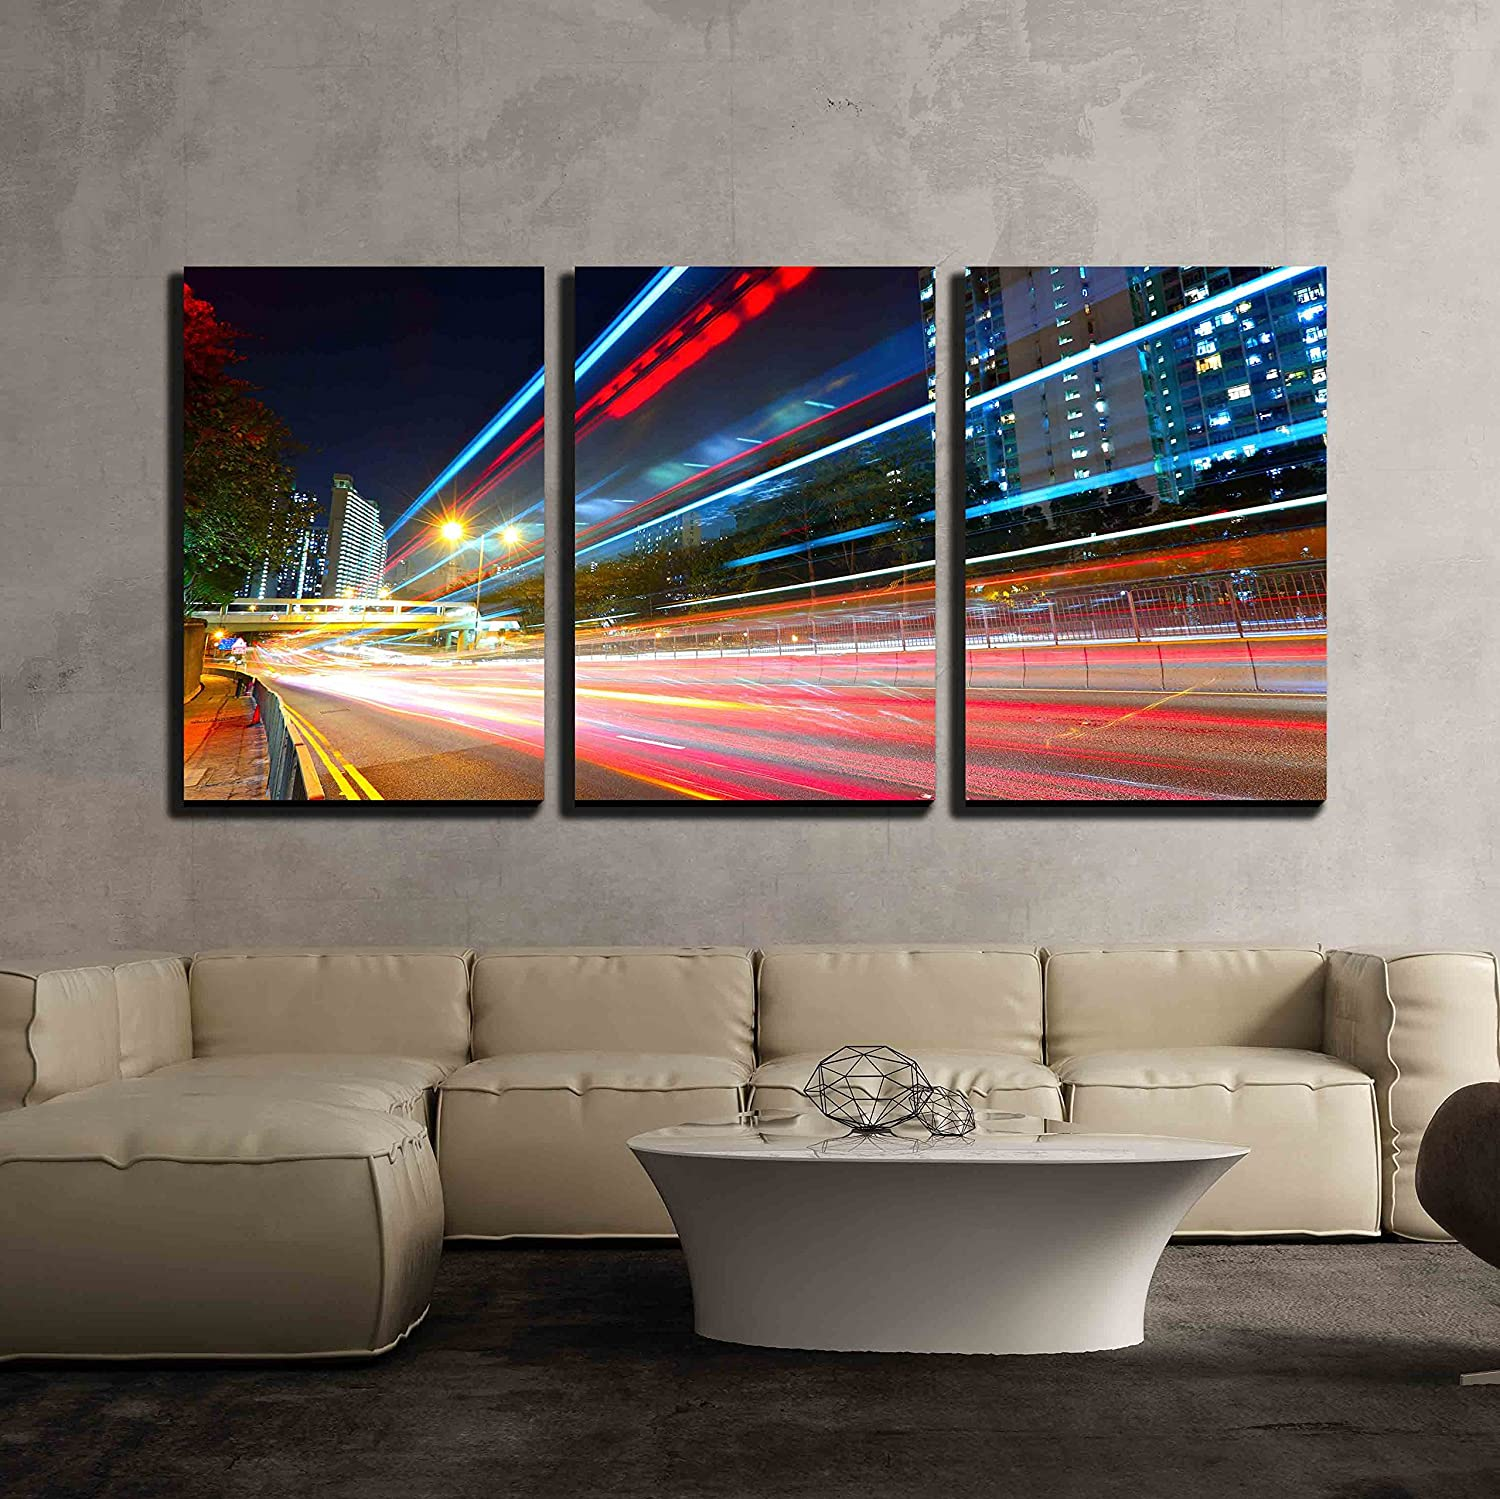 wall26 - 3 Piece Canvas Wall Art - Traffic at City in Night - Modern Home Art Stretched and Framed Ready to Hang - 16x24x3 Panels